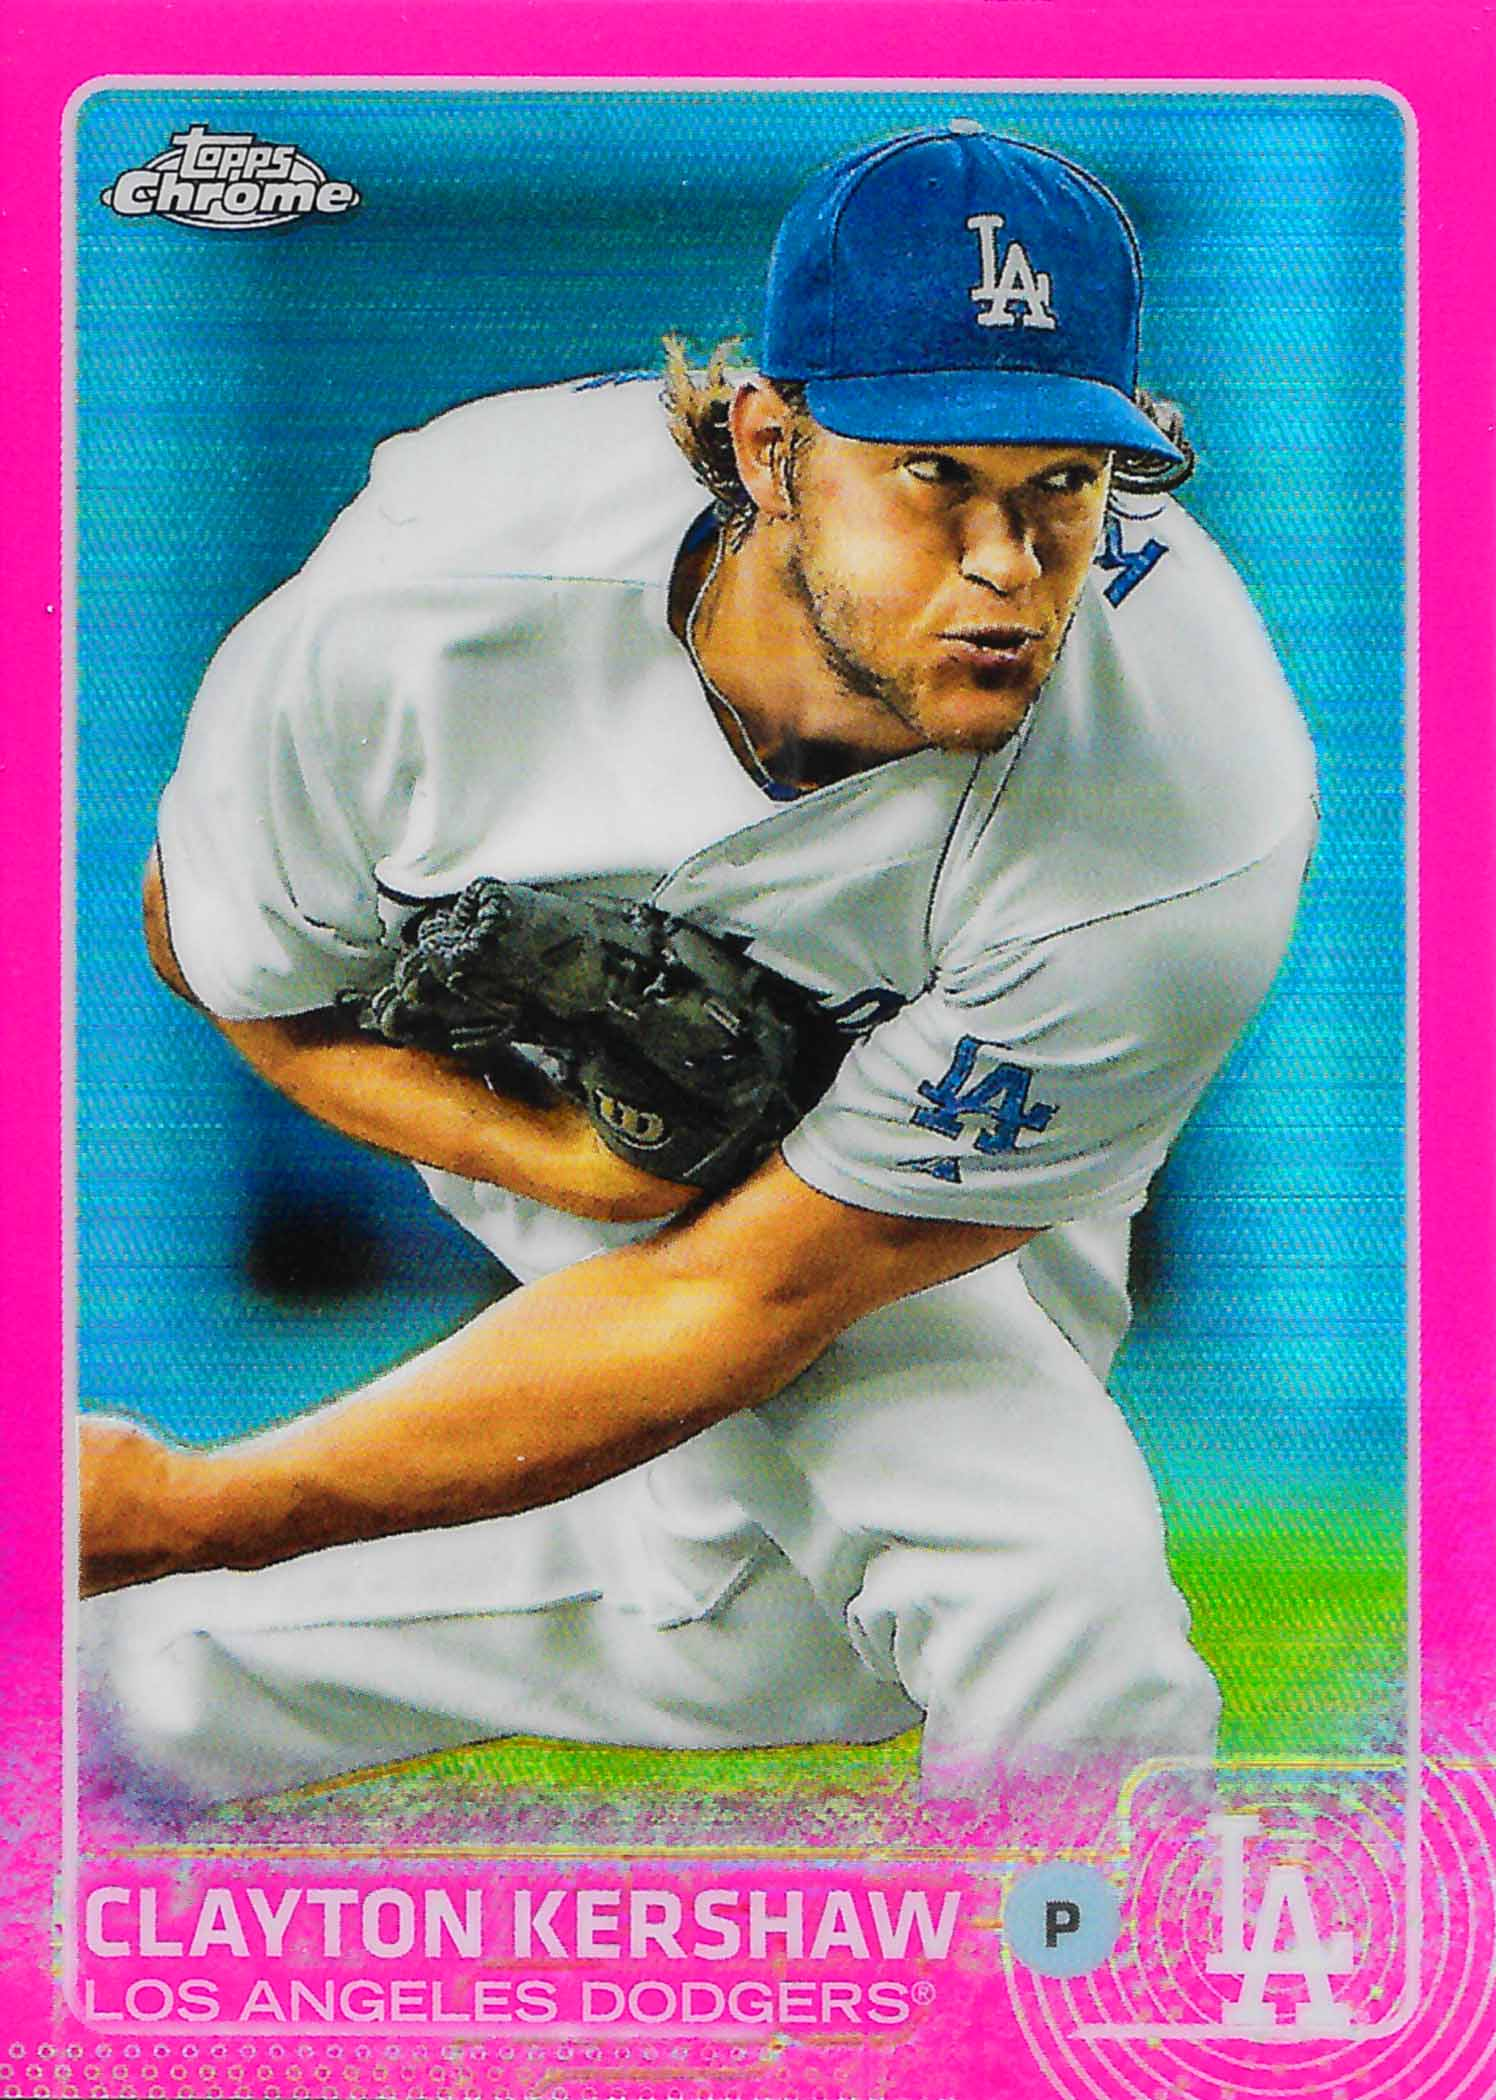 2014 Topps Chrome Chrome Connections Die Cuts